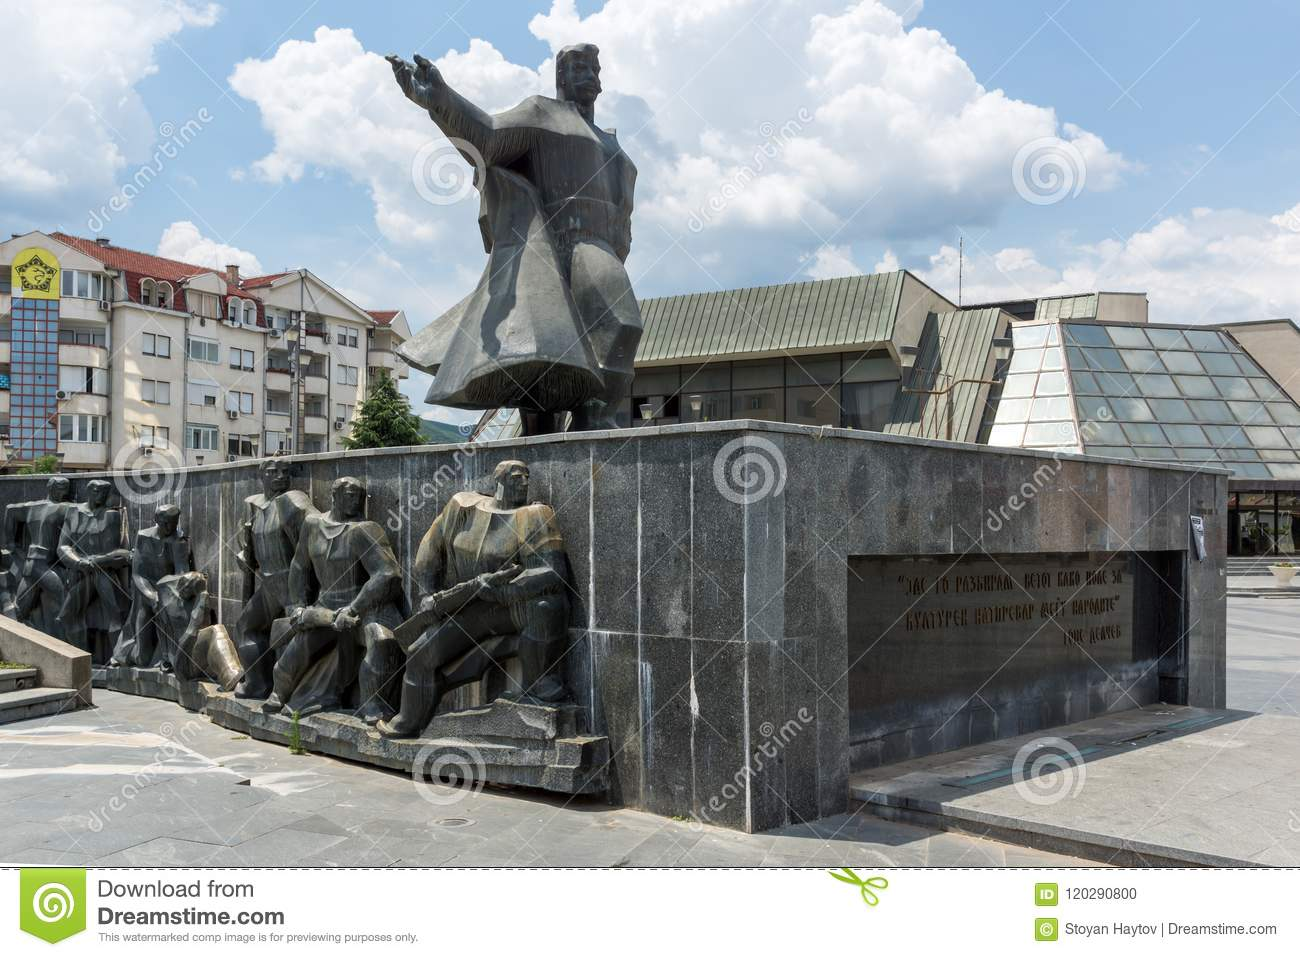 Monument of Gotse Delchev at the central square of town of Strumica, Republic of Macedonia